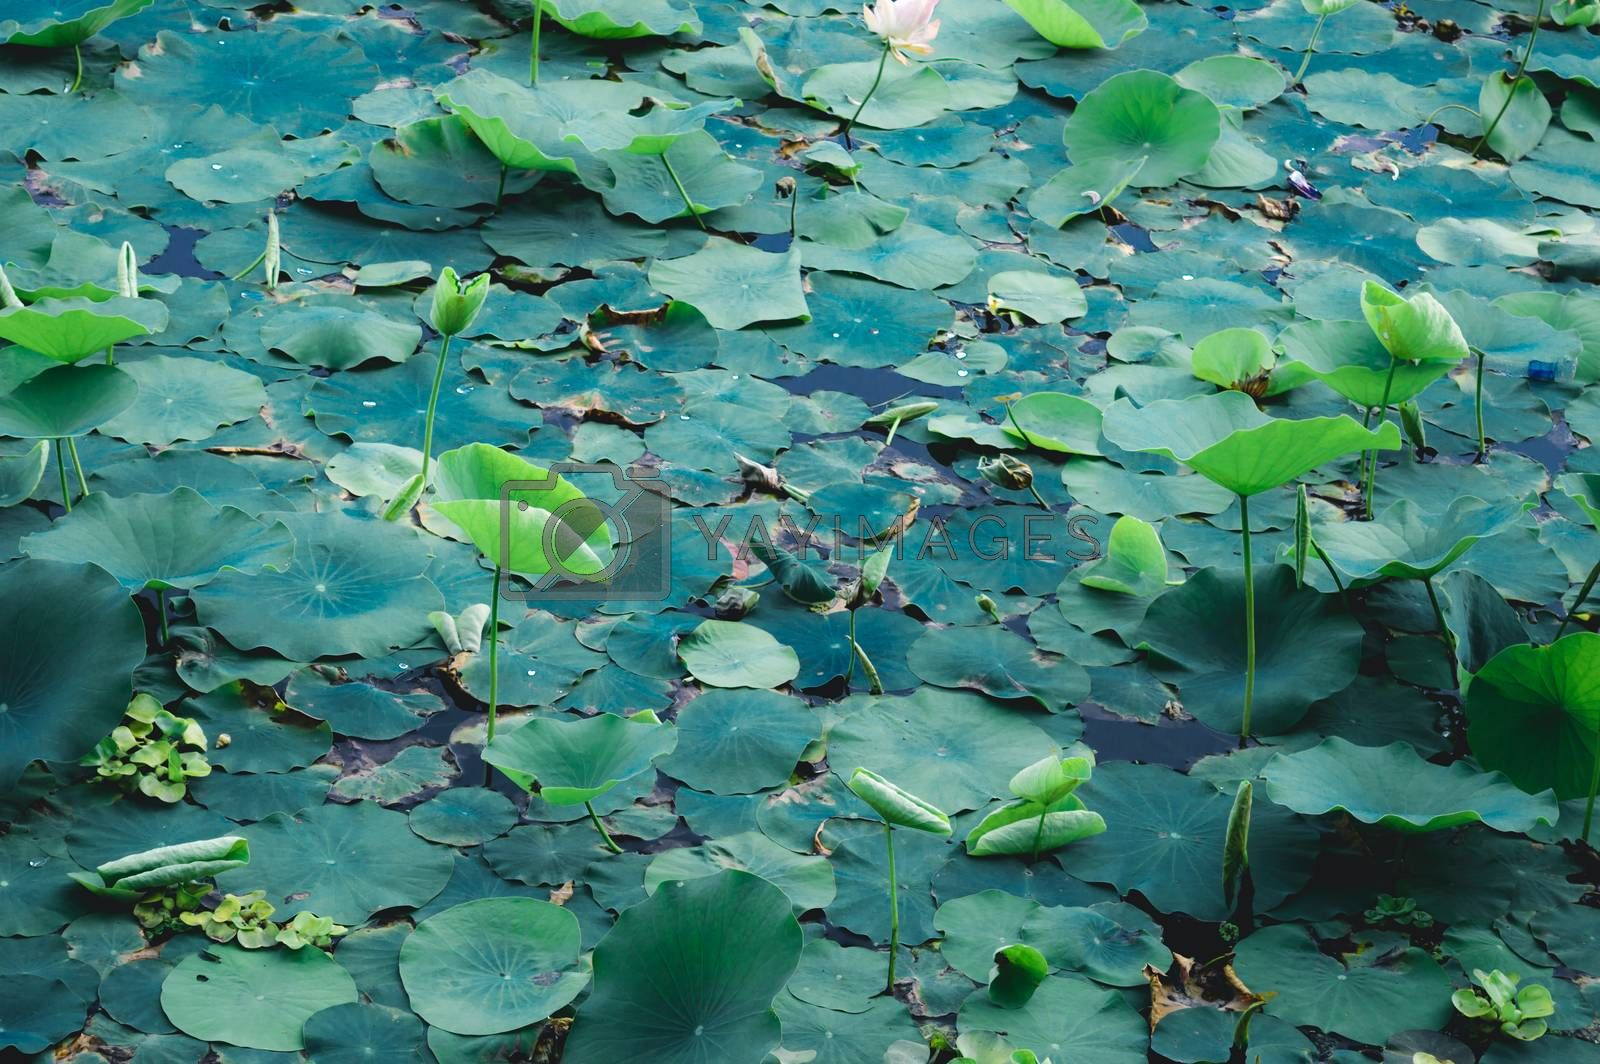 Green lotus water lily flower on pond water surface level in a wetland. Variegated foliage aquatic plant organism. Spirituality meditating peace spirituality symbol. tranquility background decoration